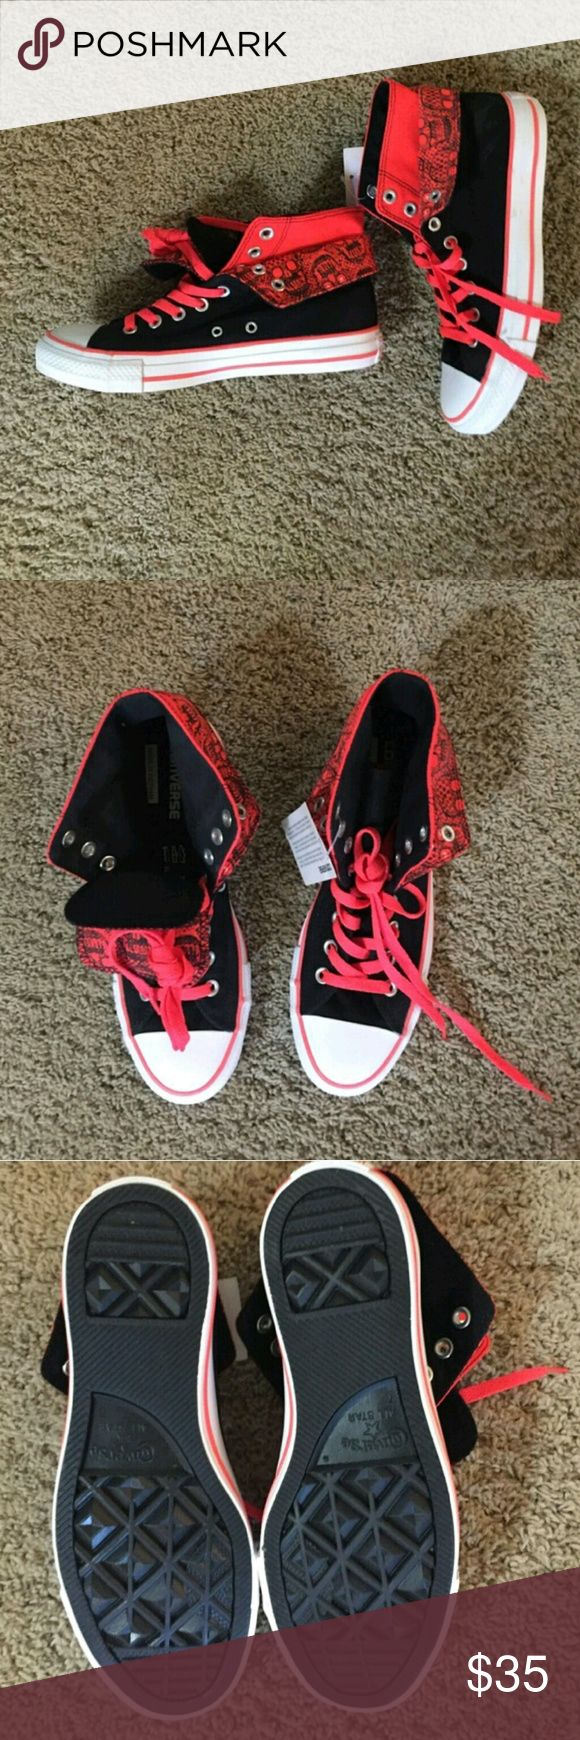 NWT Converse NWT women's size 9 converse in black and neon orange. Converse Shoes Sneakers